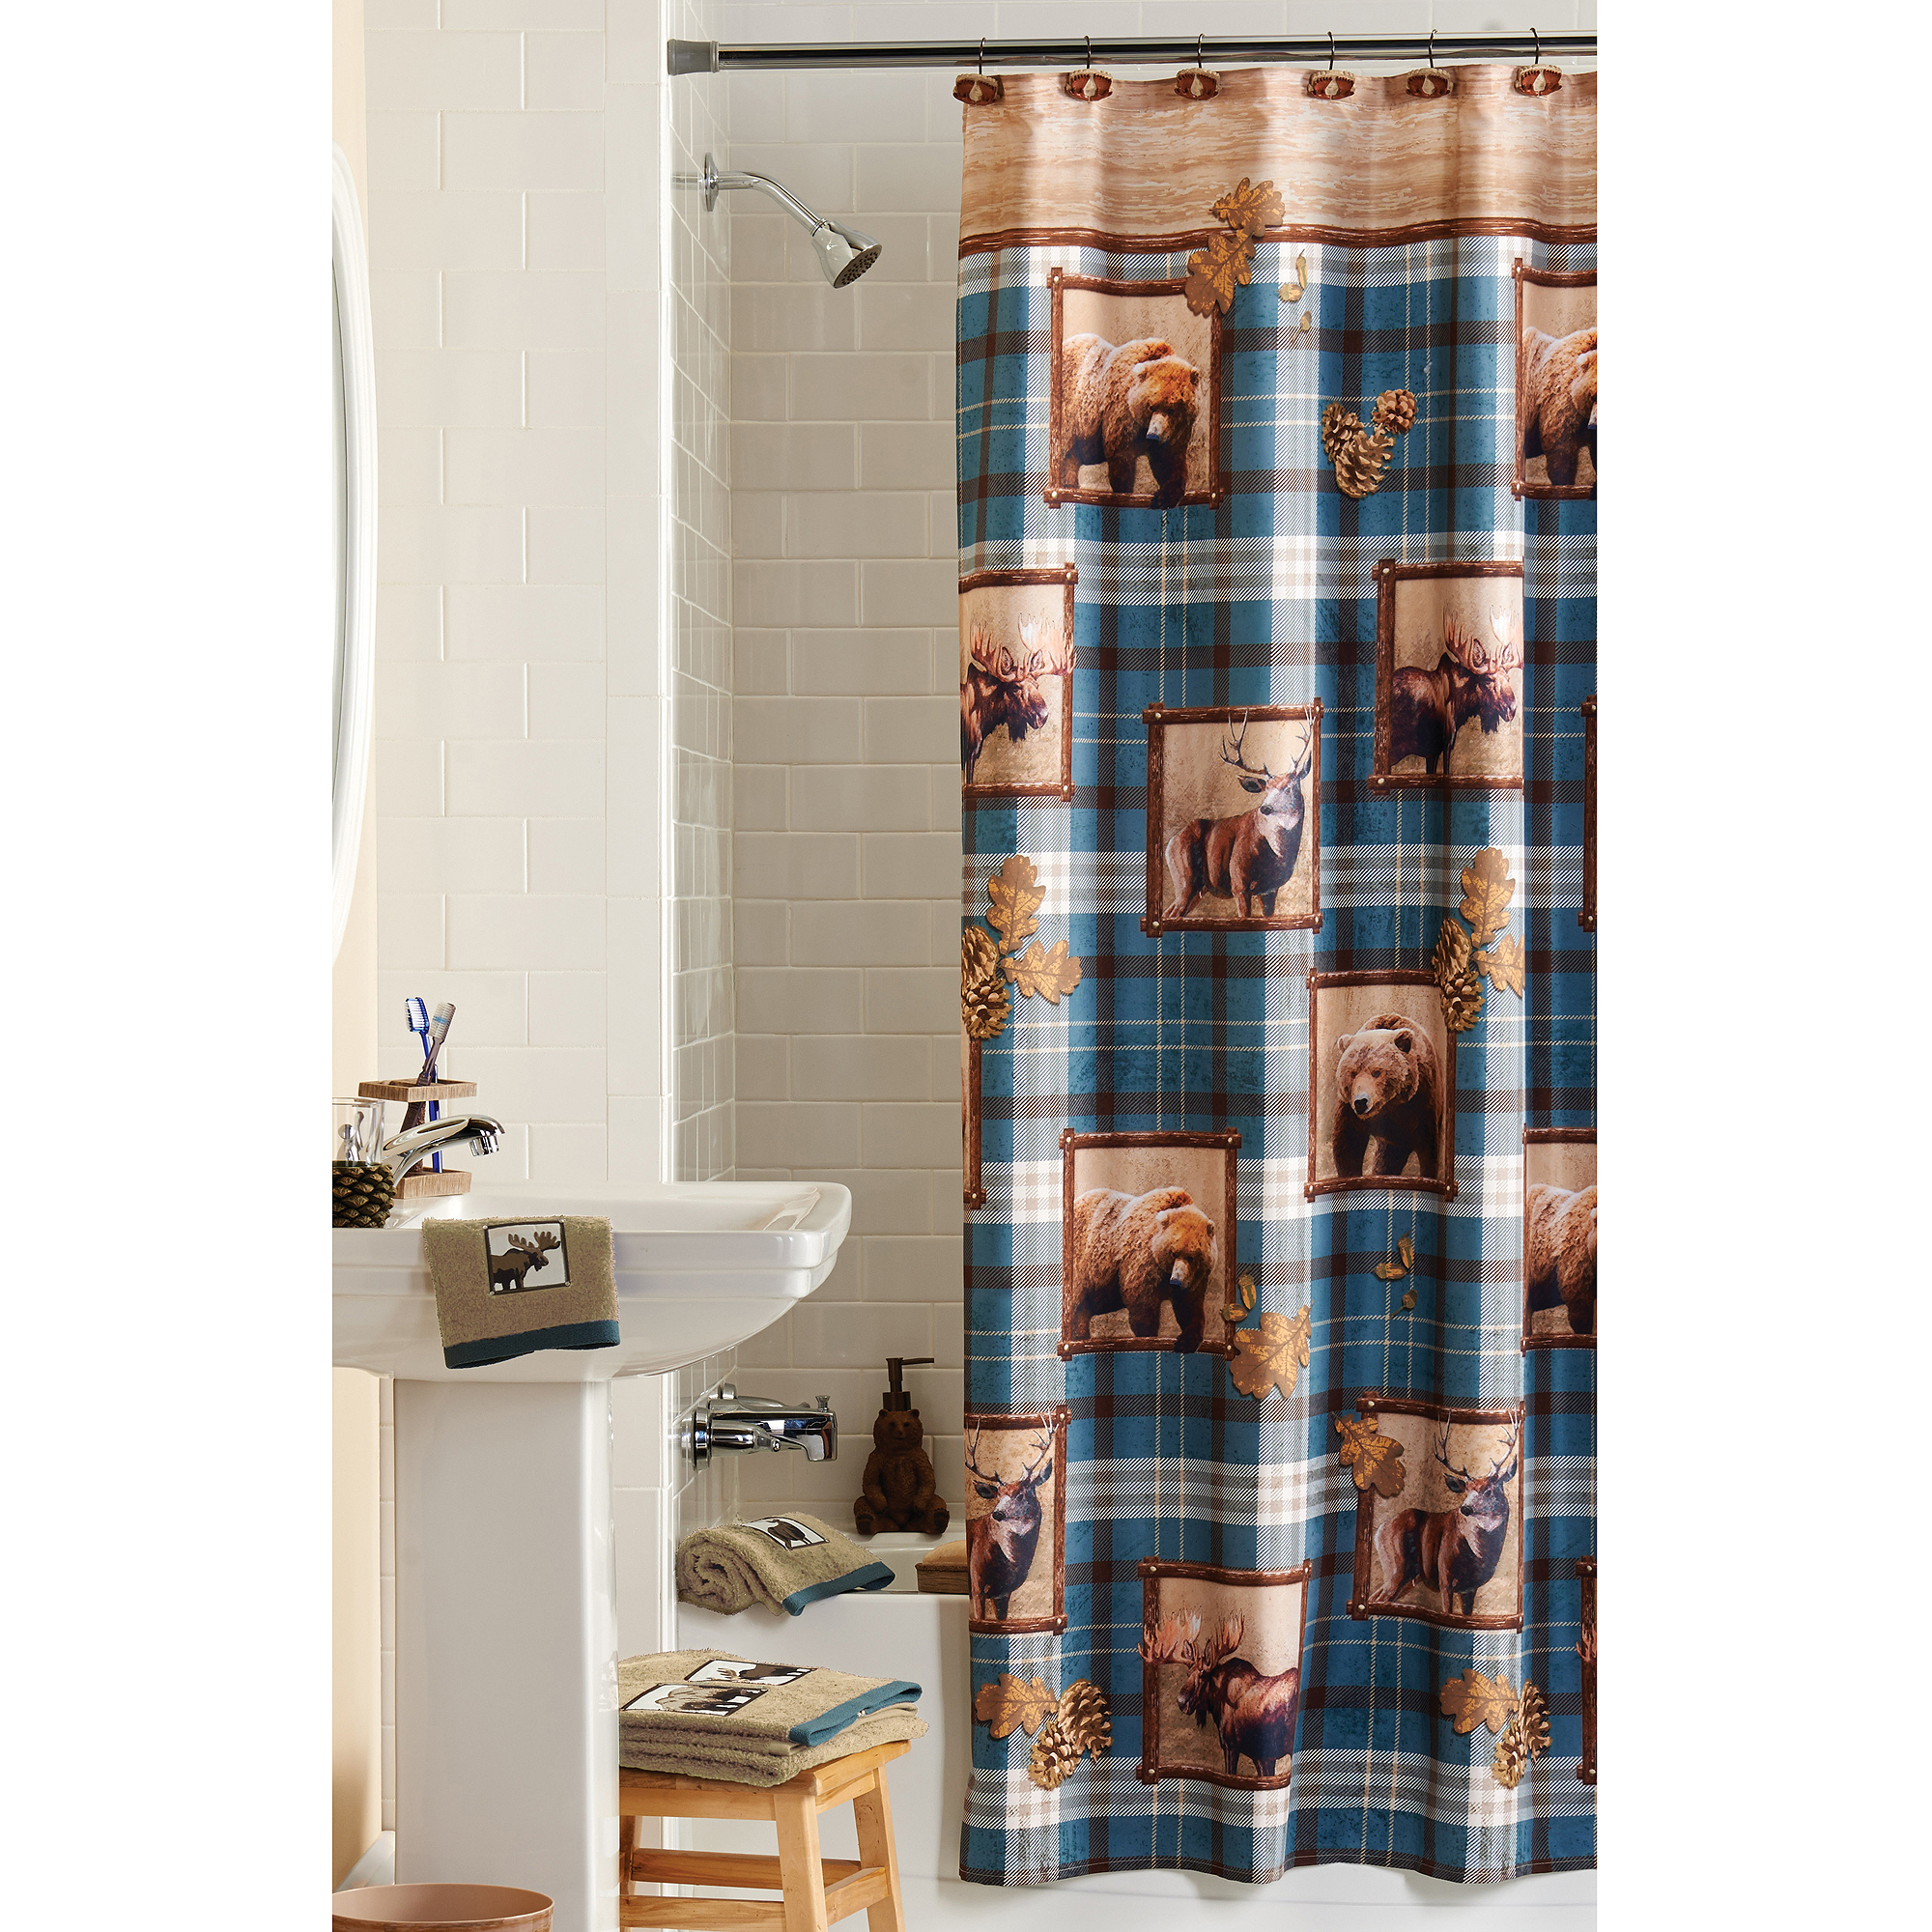 Mainstays Plaid Lodge Shower Curtain